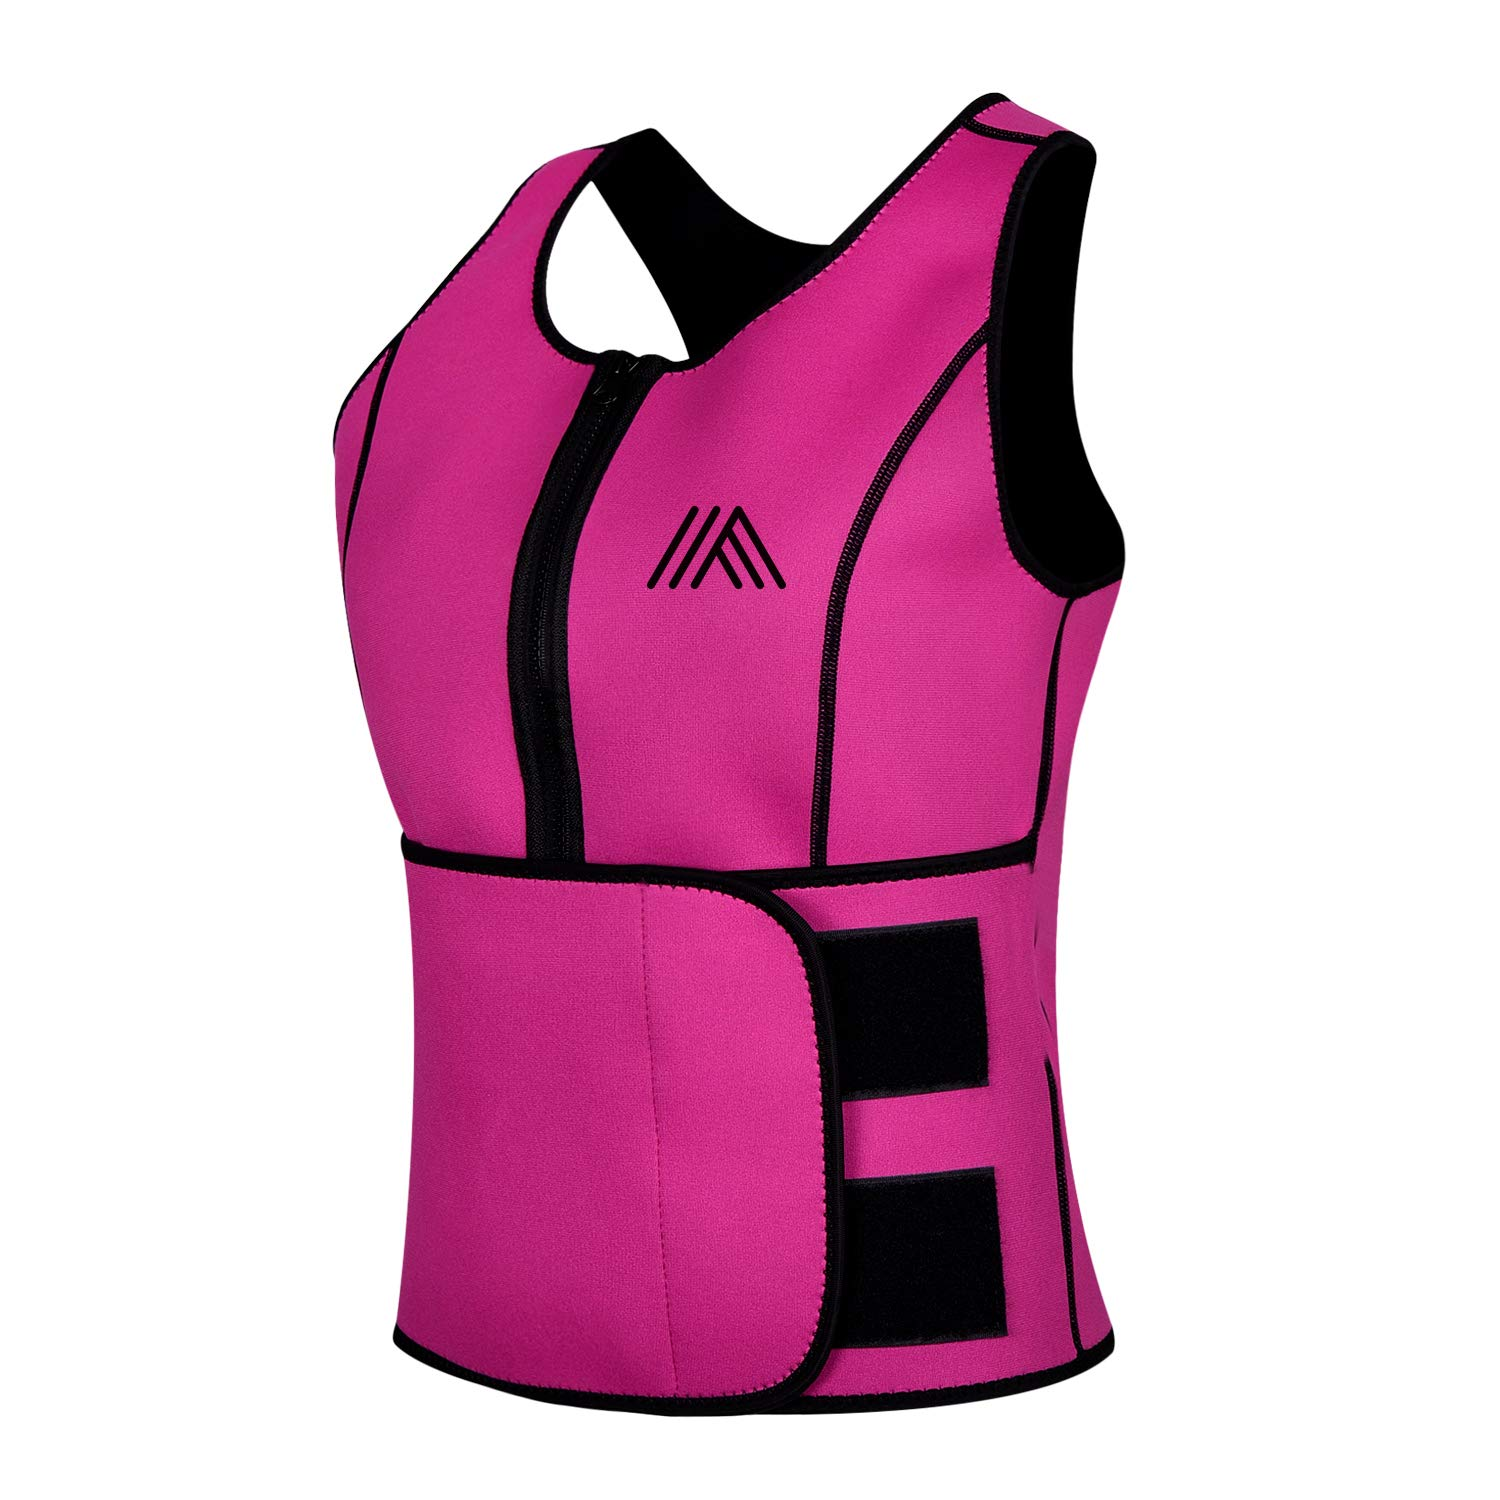 AQUIVA Neoprene Sweat Sauna Suit Trainer Vest for Women with Adjustable Waist Trimmer Belt for Weight Loss (Pink, L) by AQUIVA